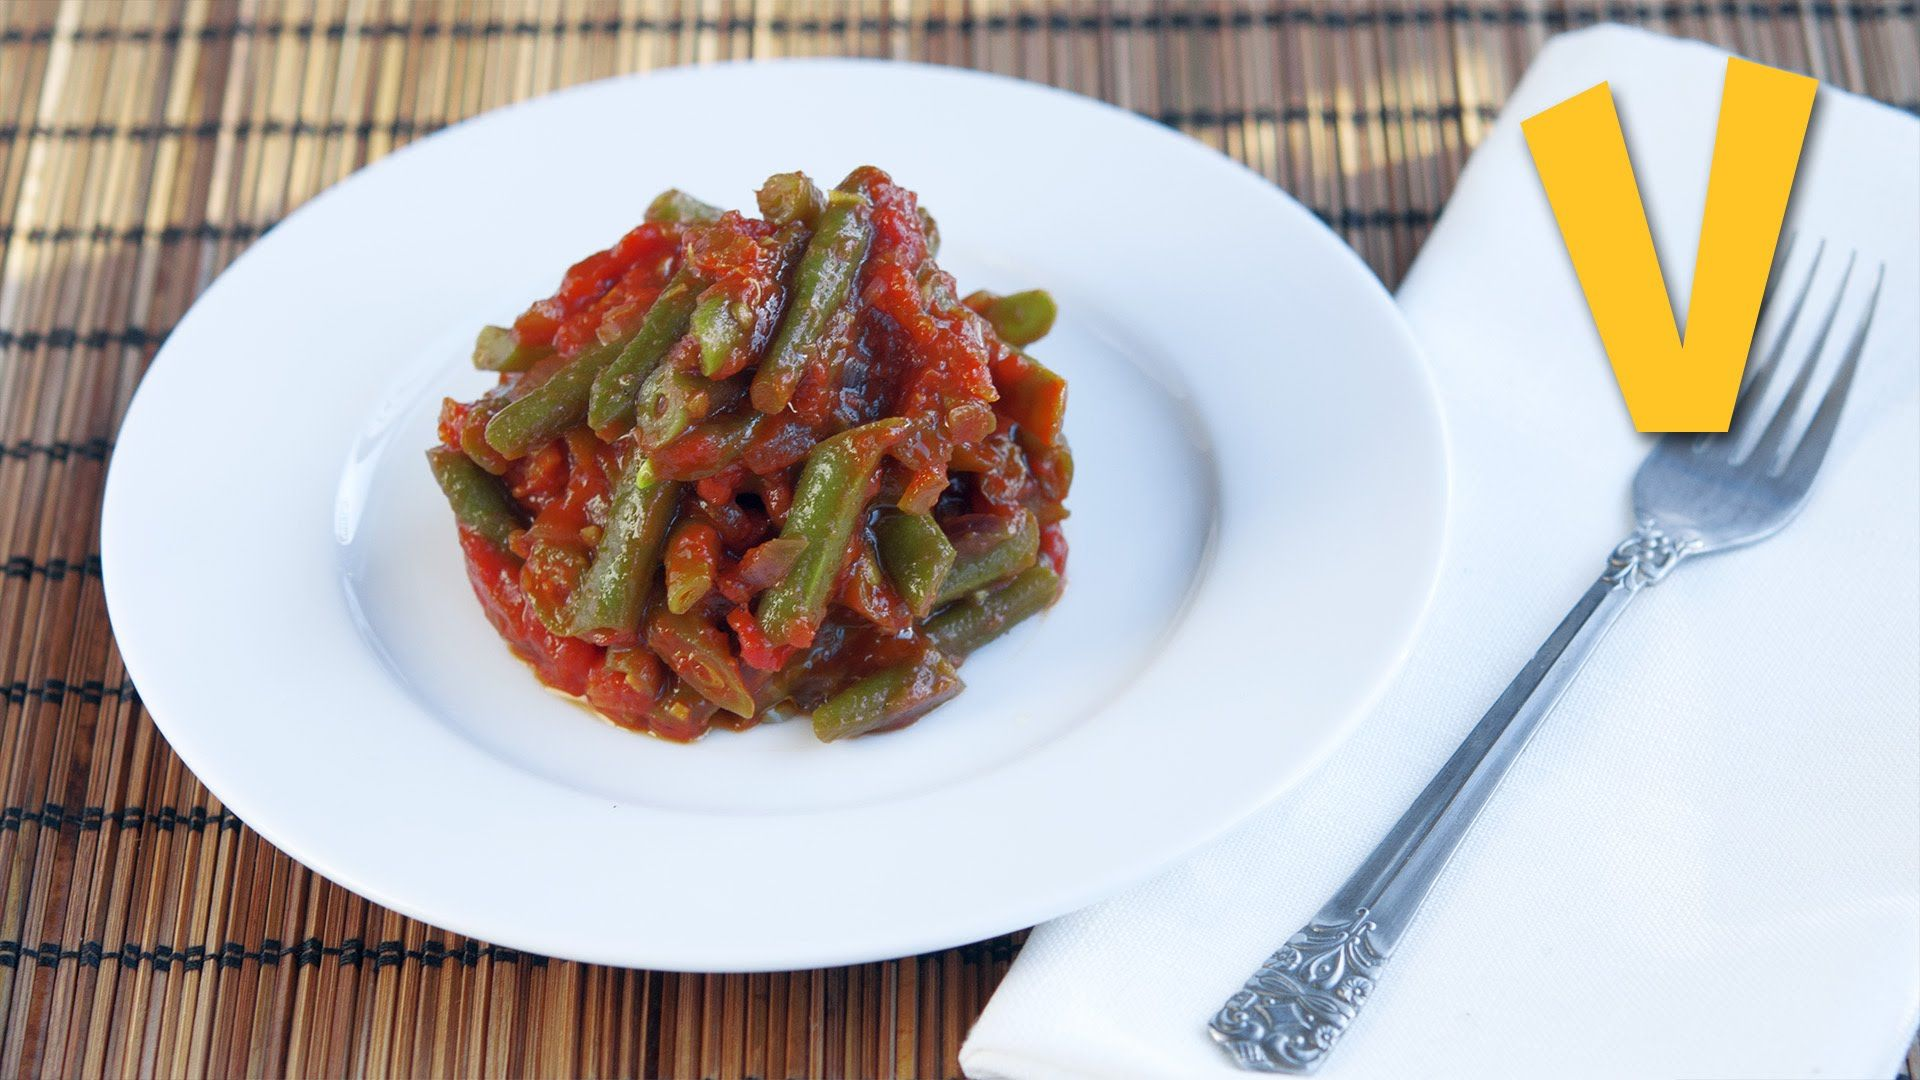 Italian style green beans cant wait to try this healthy food if you like beans then we have the right recipe for you in this video well show you how to make some healthy italian green beans that will impress any forumfinder Image collections